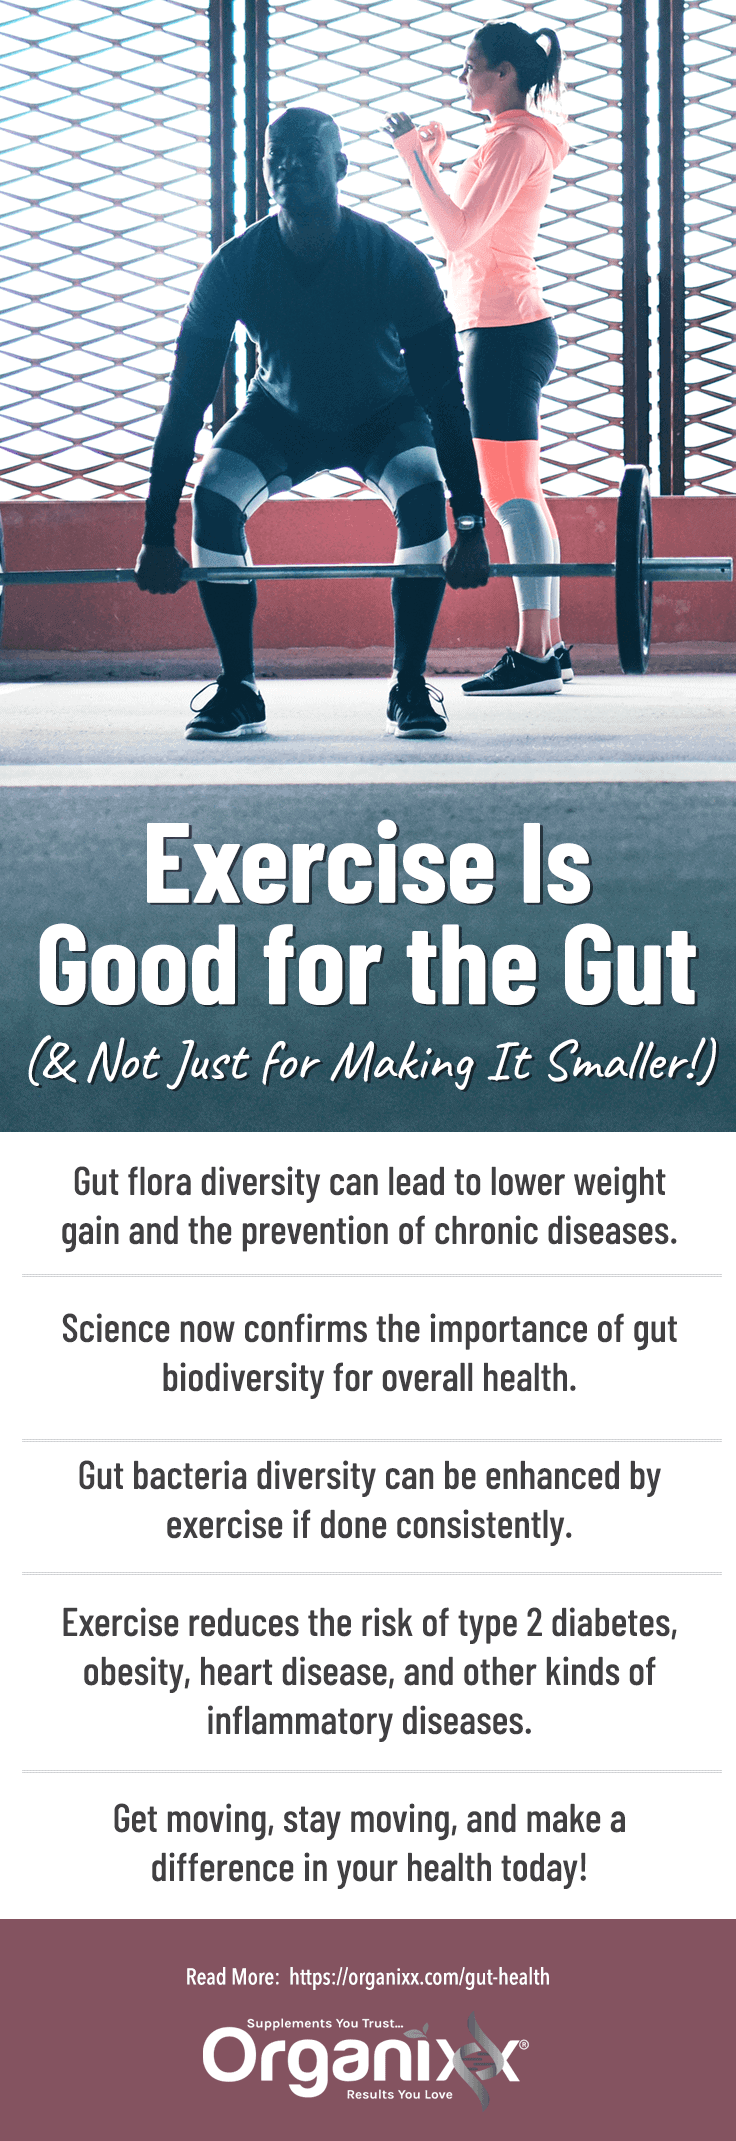 Infographic with list of reasons why exercise is good for gut health